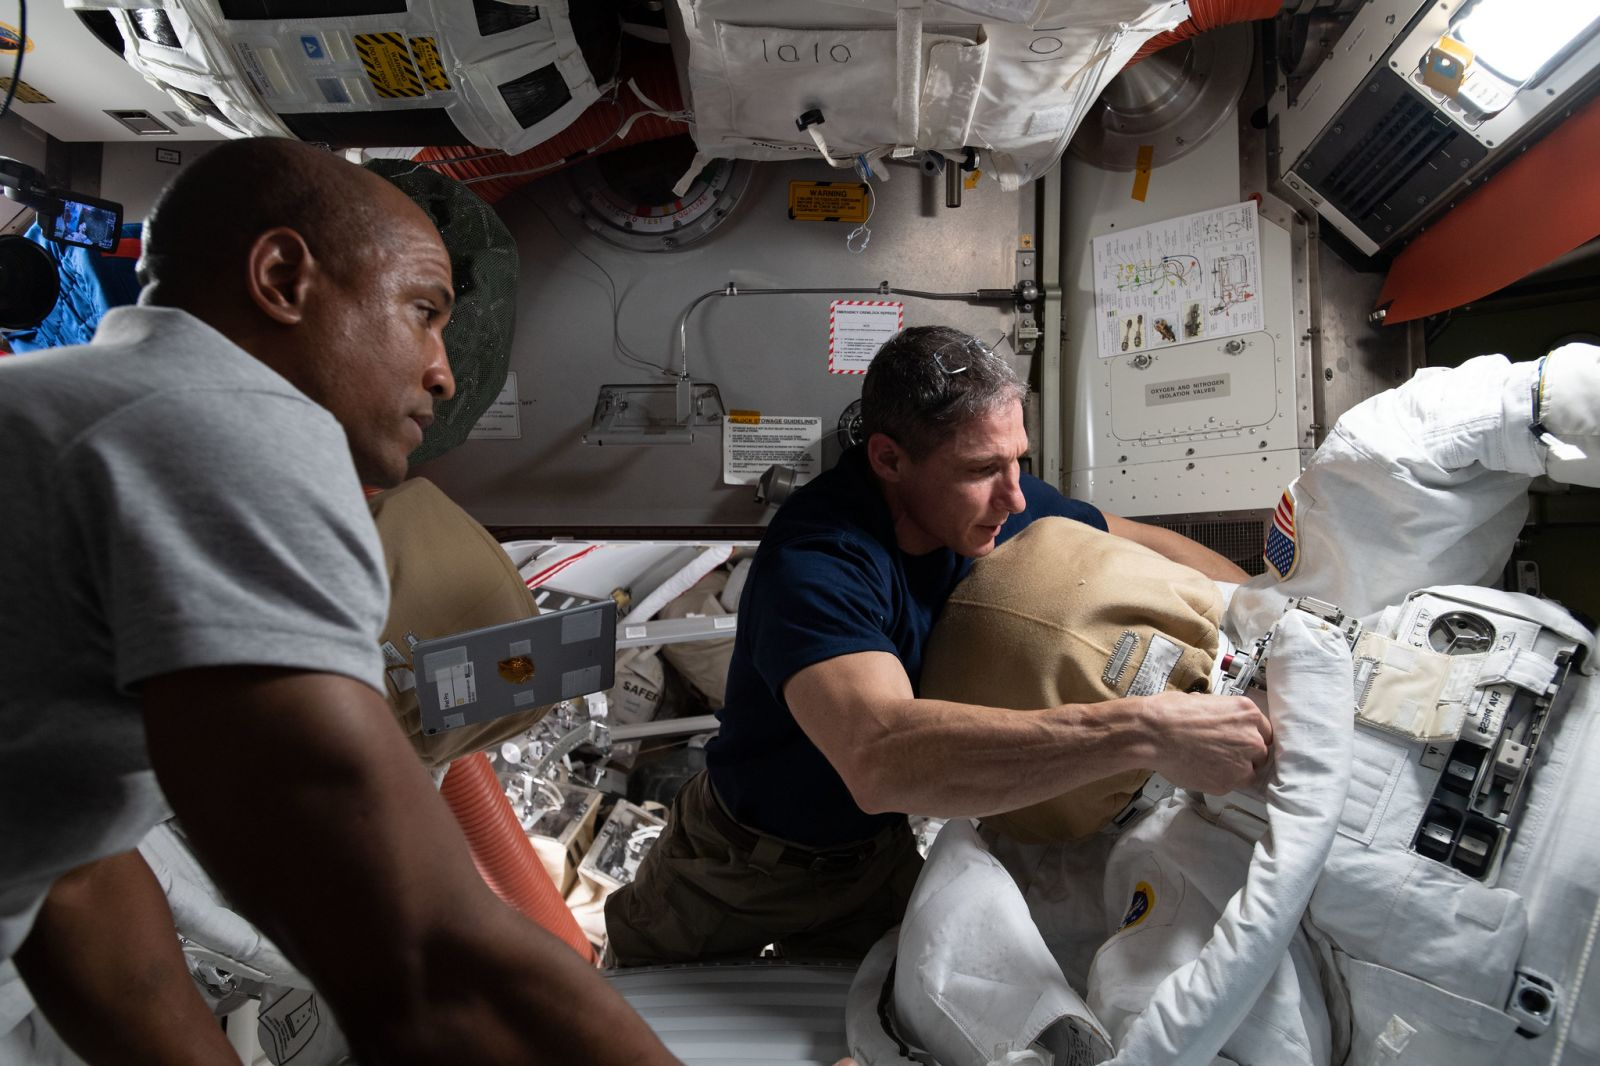 NASA astronauts Victor Glover, left, and Mike Hopkins work to ready their spacesuits in advance of their extravehicular activities. Credit: NASA